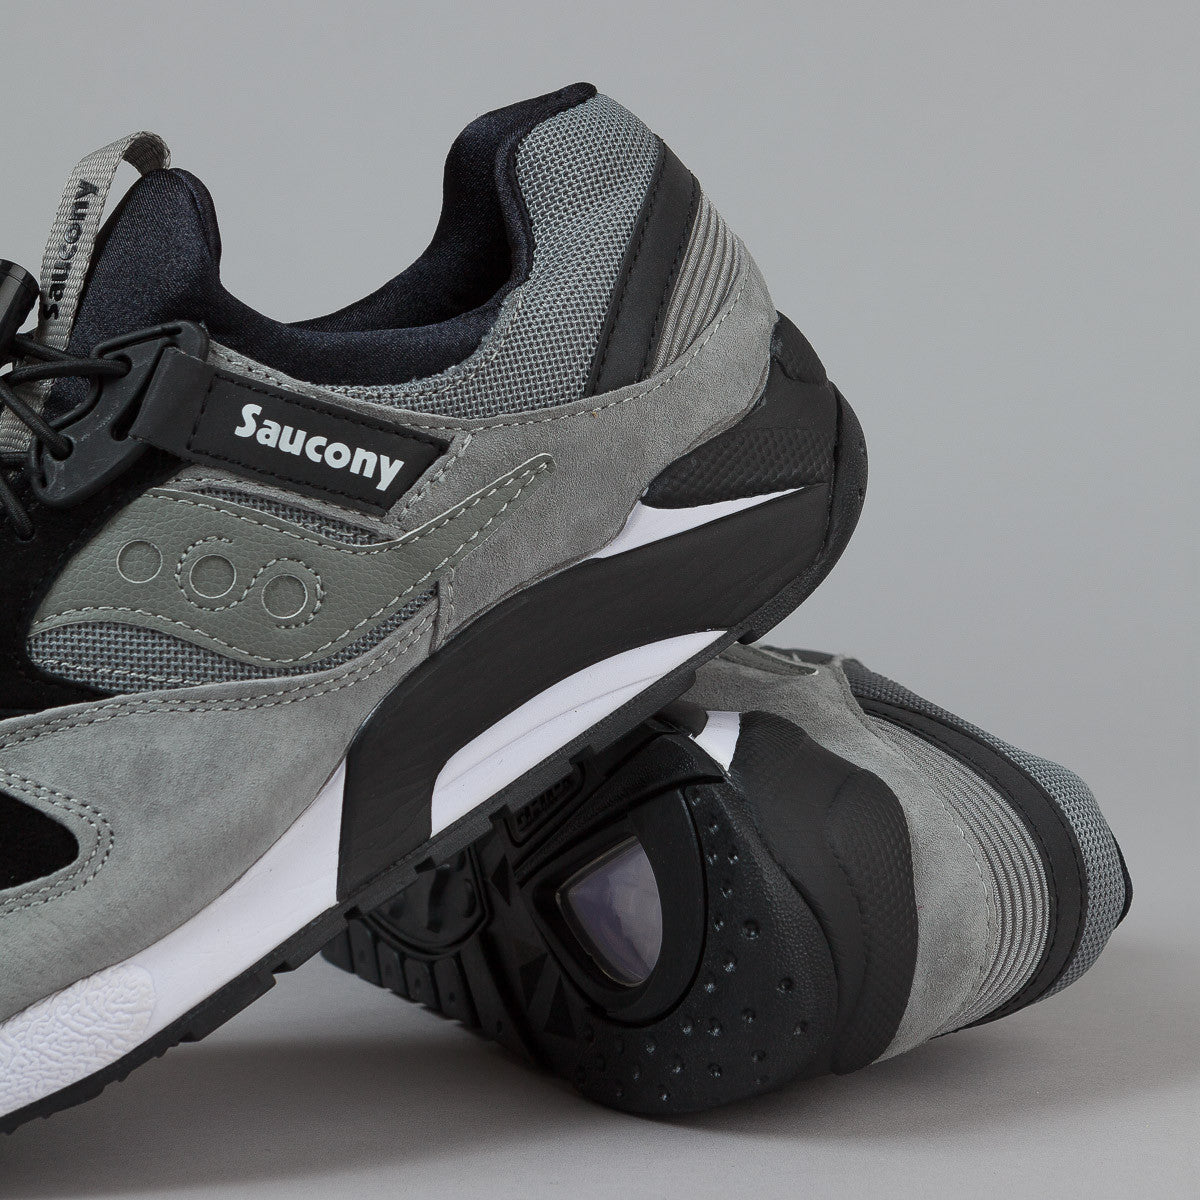 Saucony Grid 9000 Premium - Grey / Black